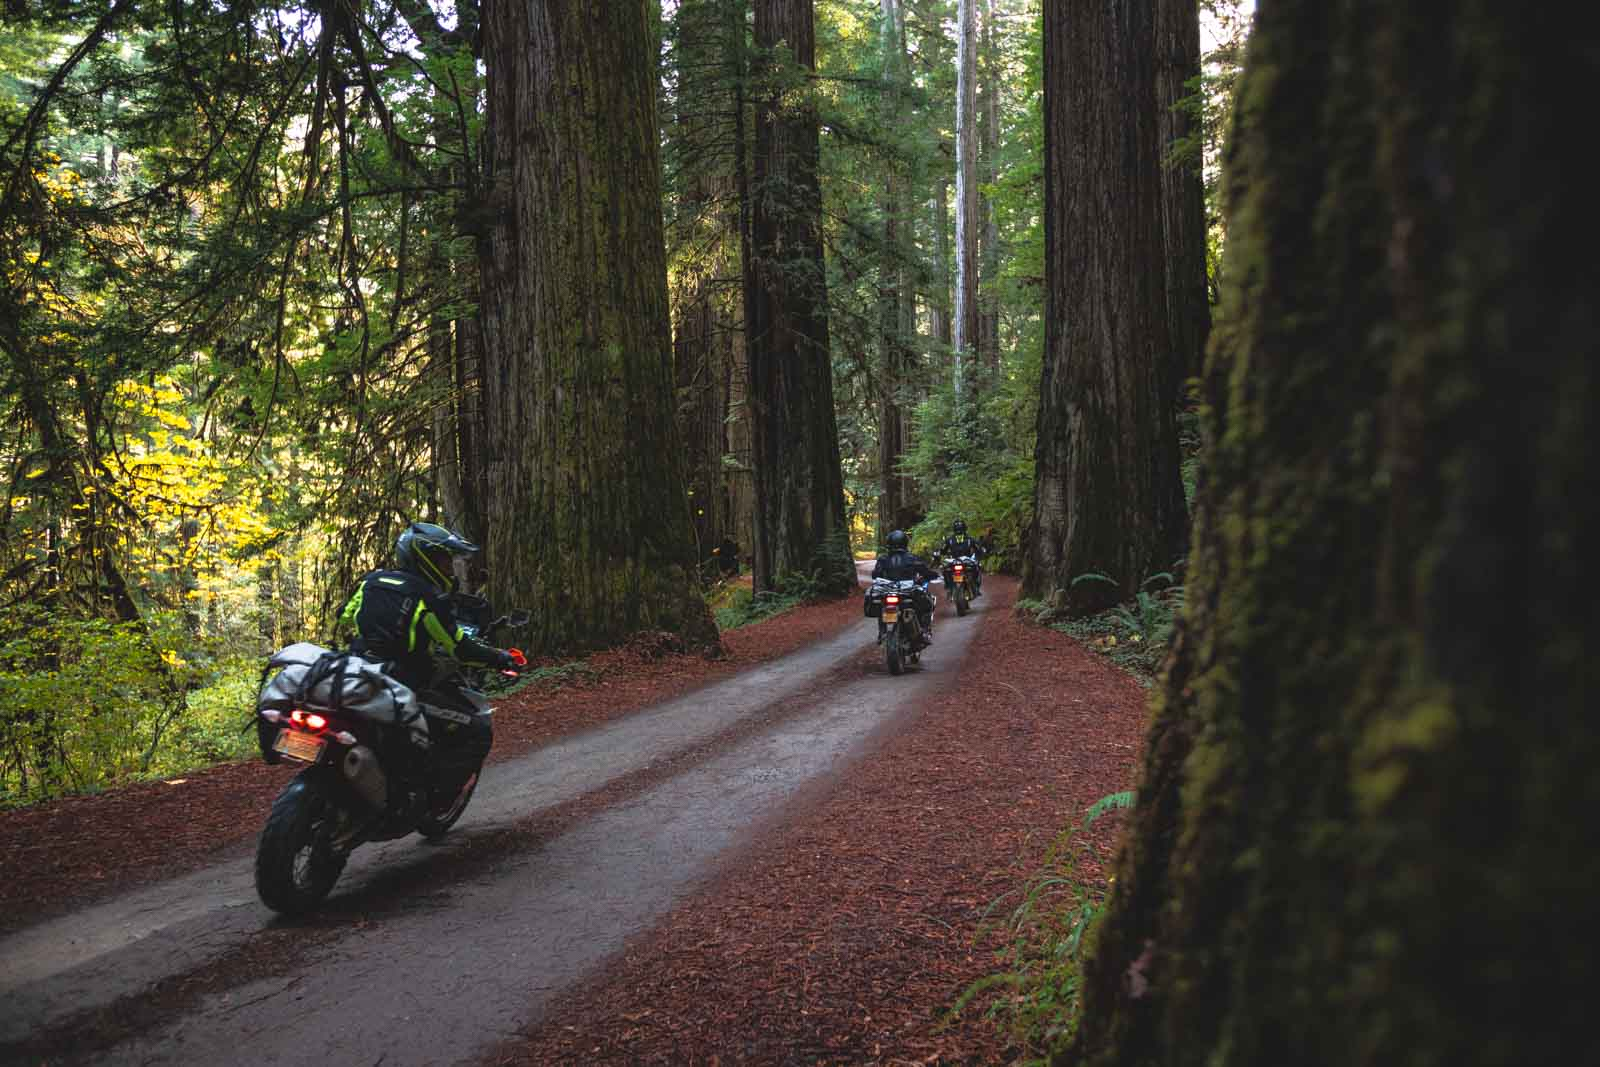 motorcycling-through-the-redwoods-on-the-pacific-coast-highway-adventure-motorcycle-tour-1